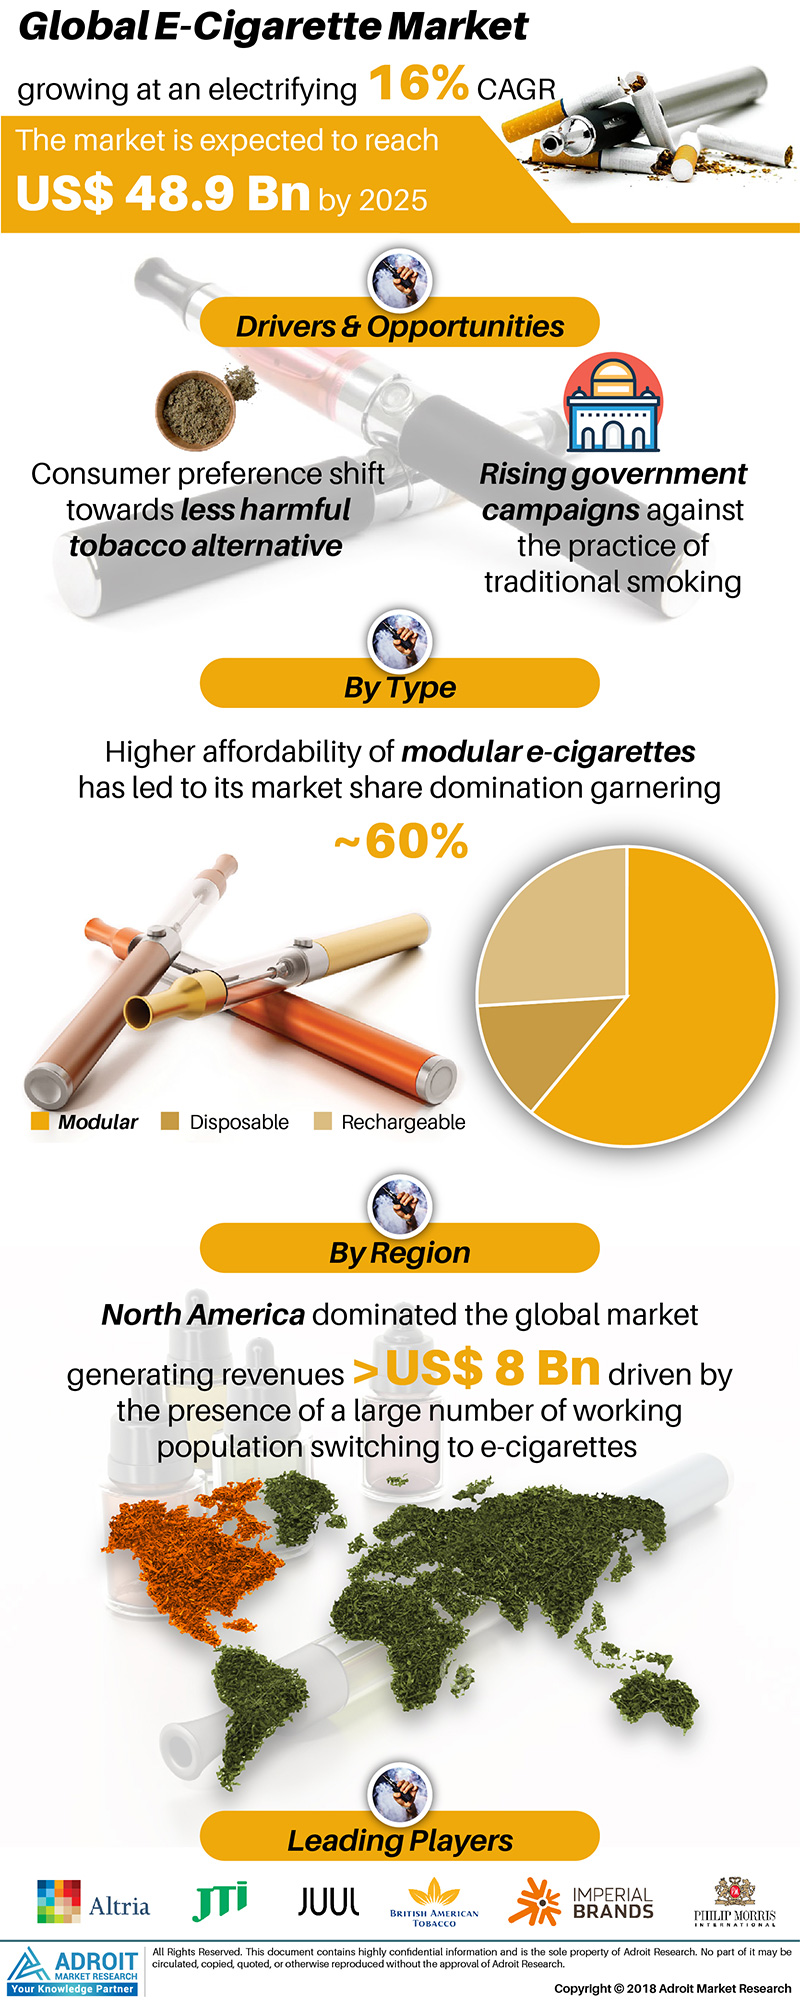 Global E-Cigarette Market Size 2017 By Type, Region and Forecast 2018 to 2025